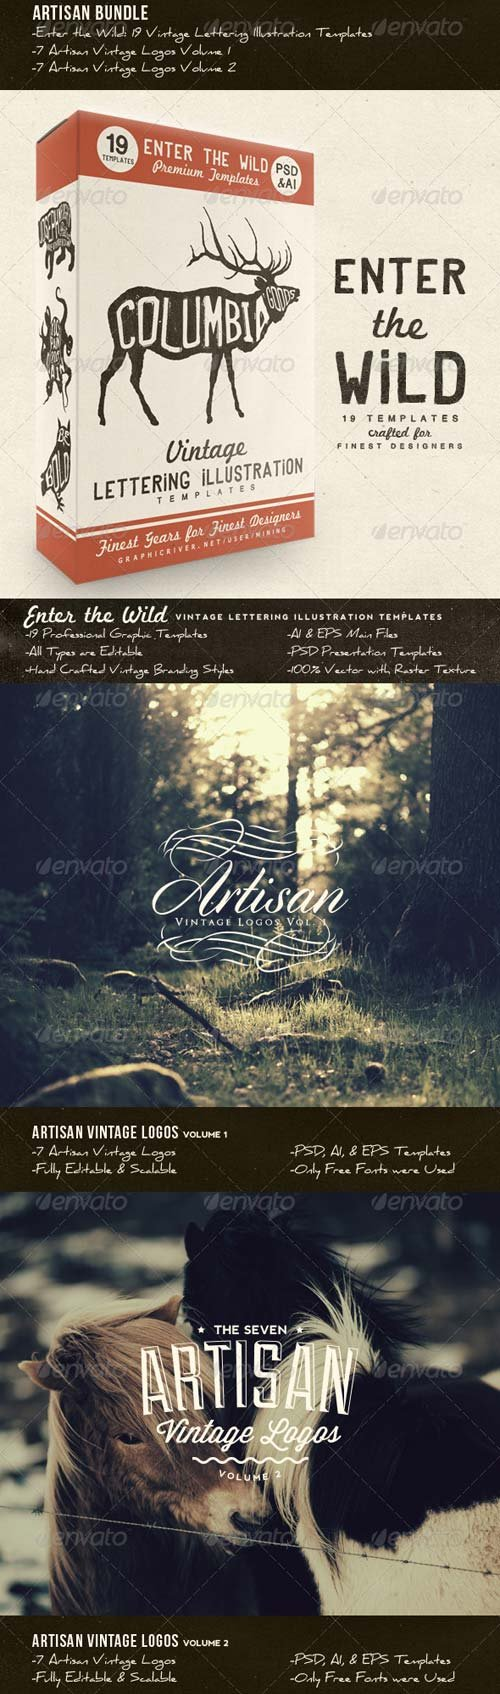 GraphicRiver Artisan Bundle